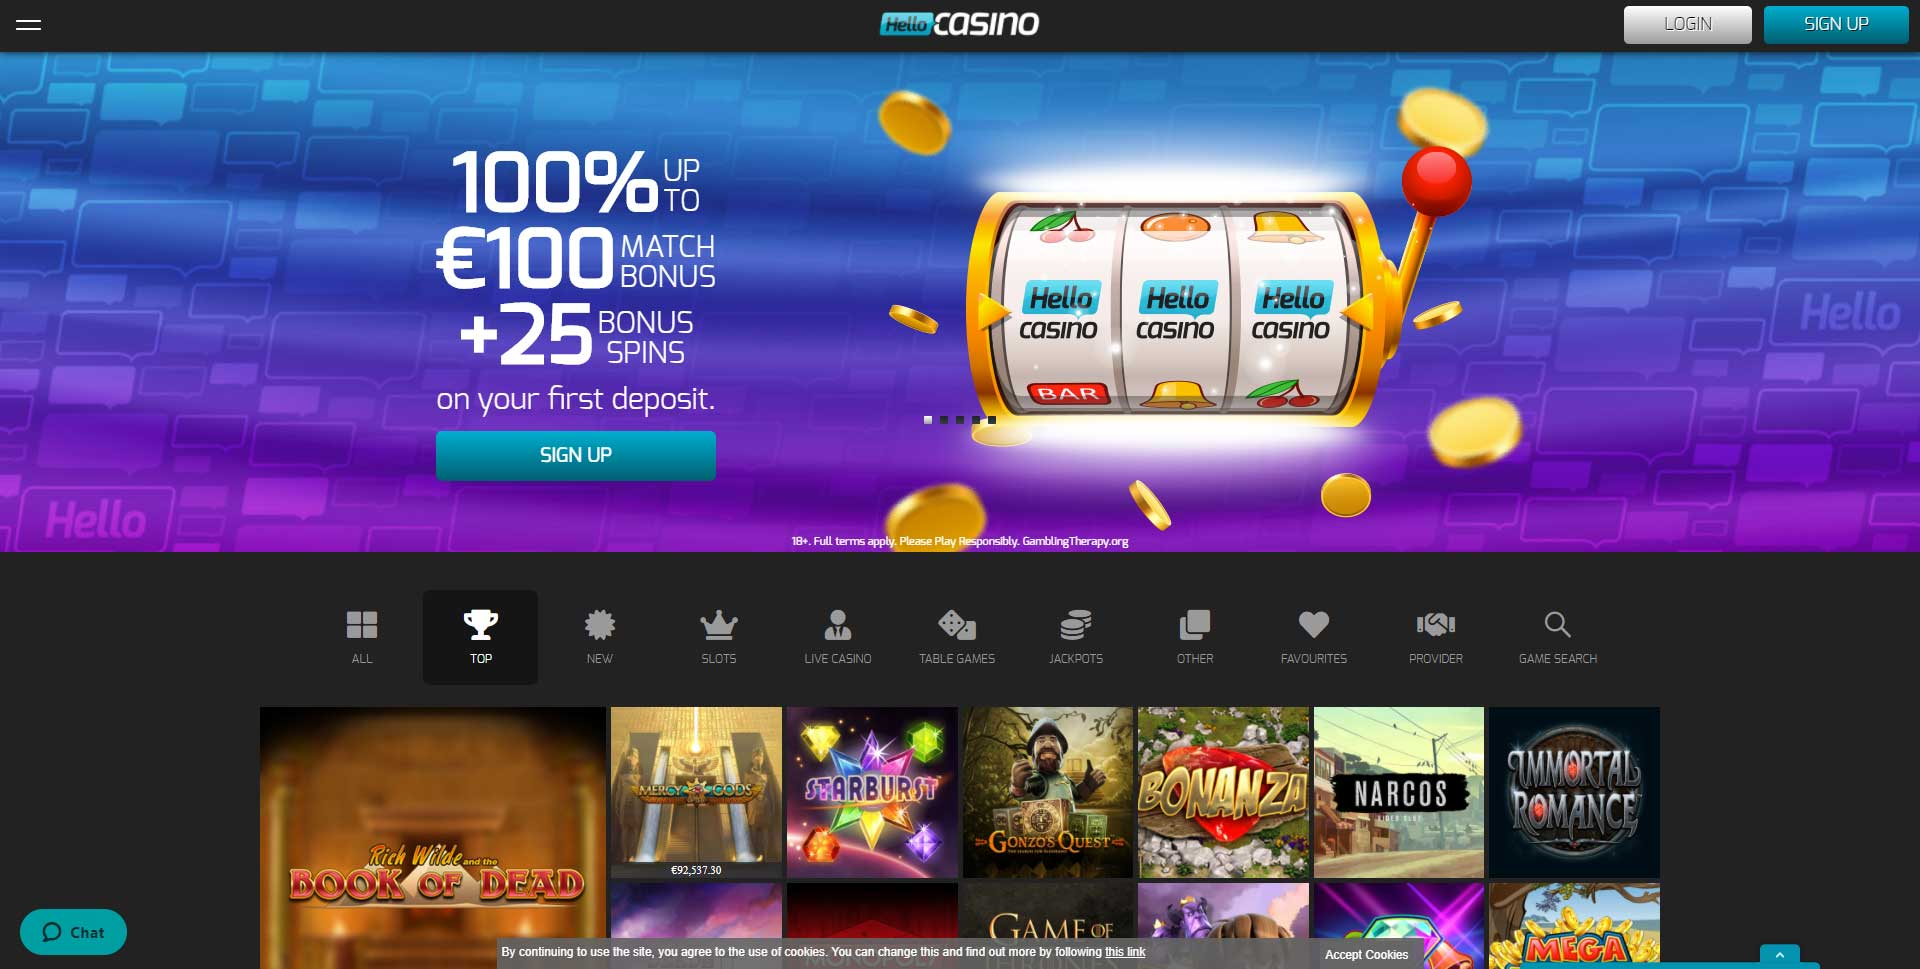 25 free spins from your first deposit